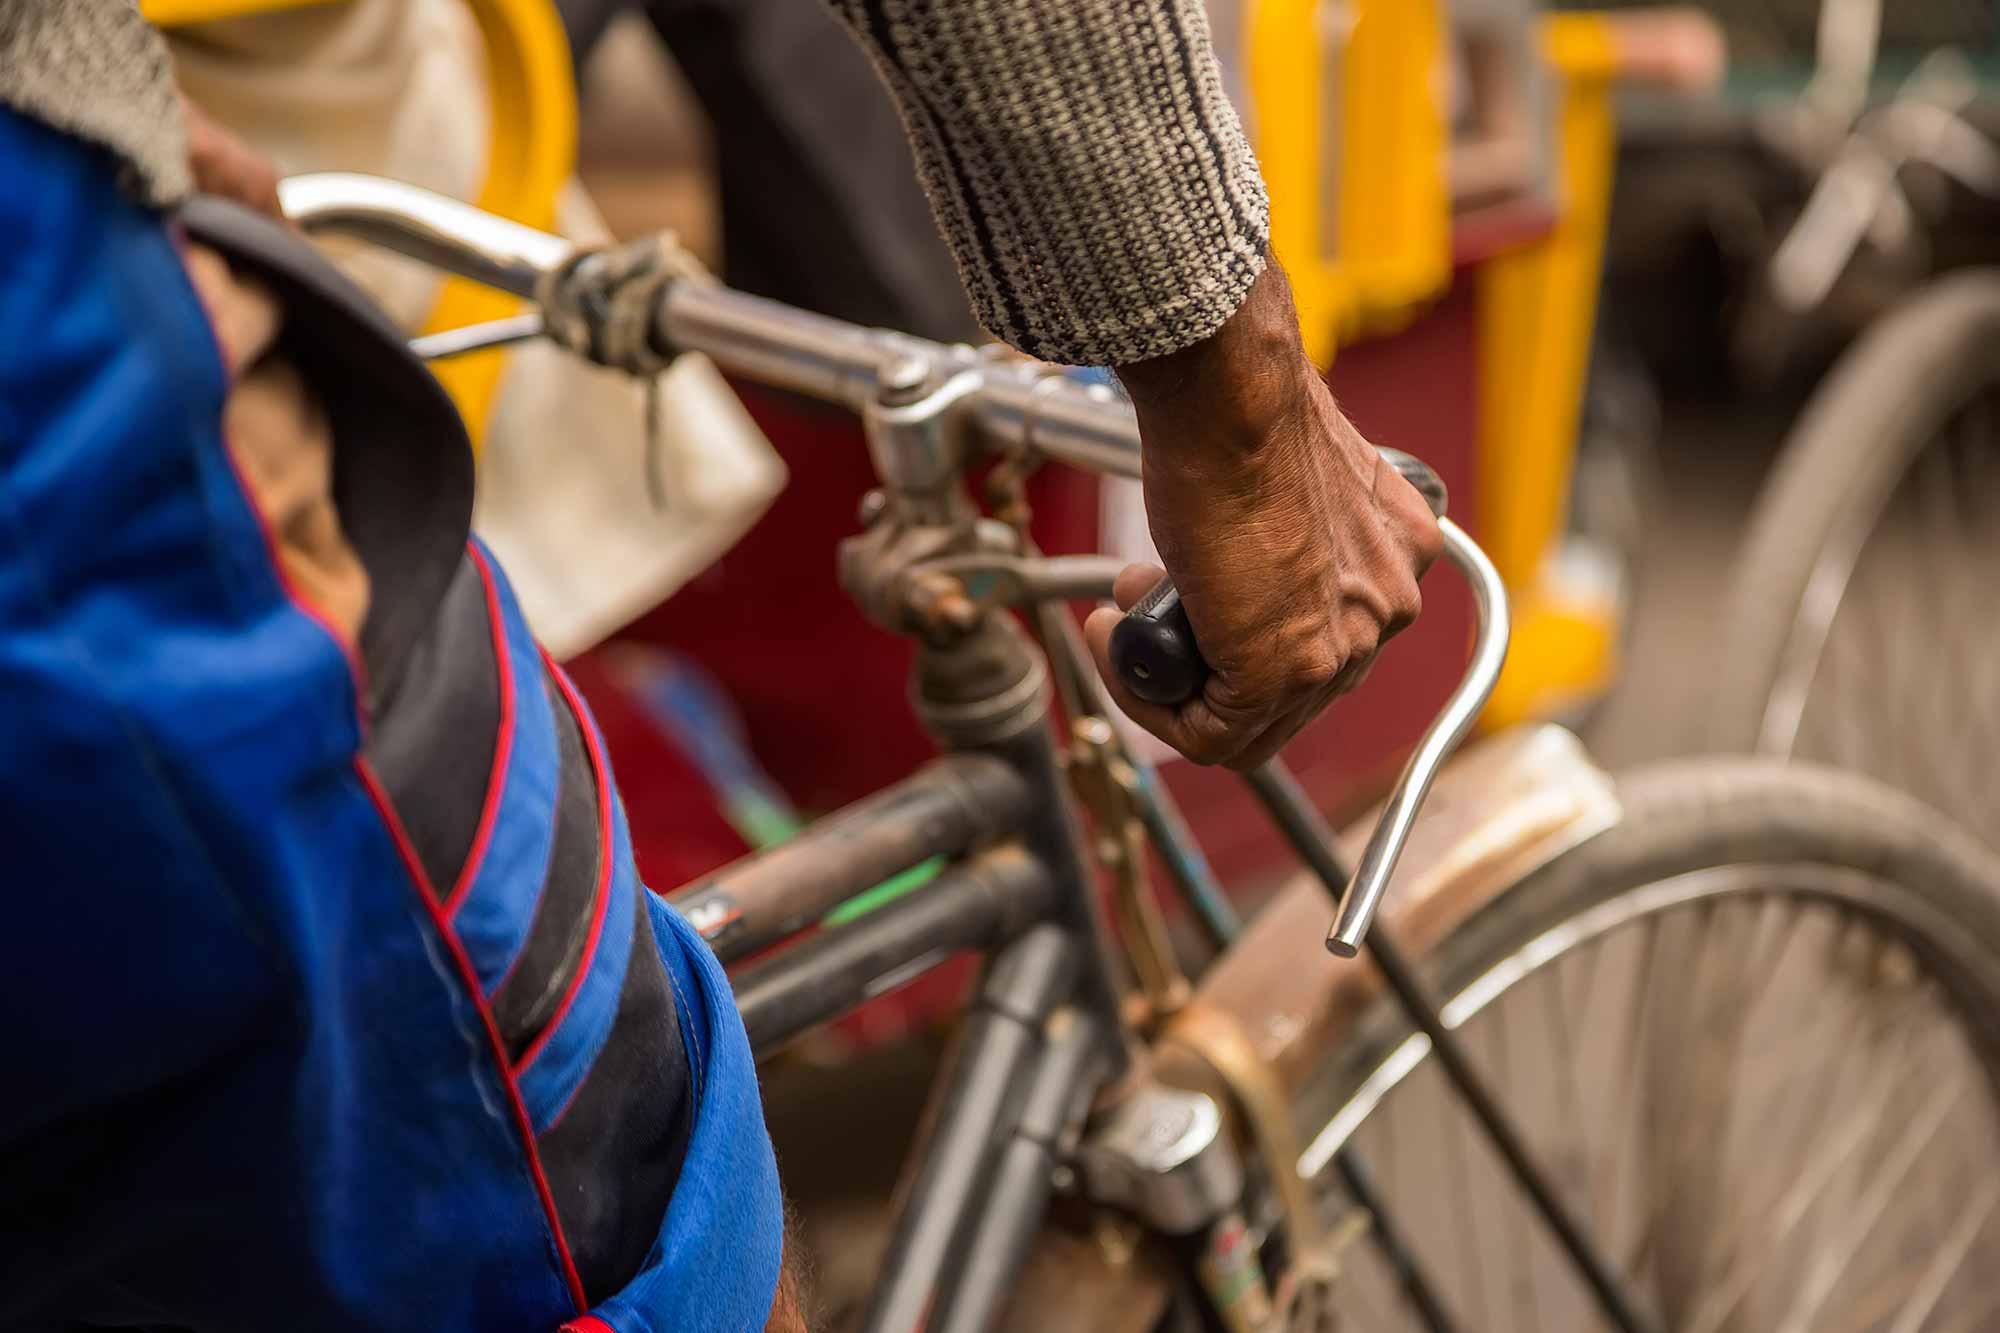 Hands of a Rikschaw driver in the streets of Kolkata, India. © Ulli Maier & Nisa Maier